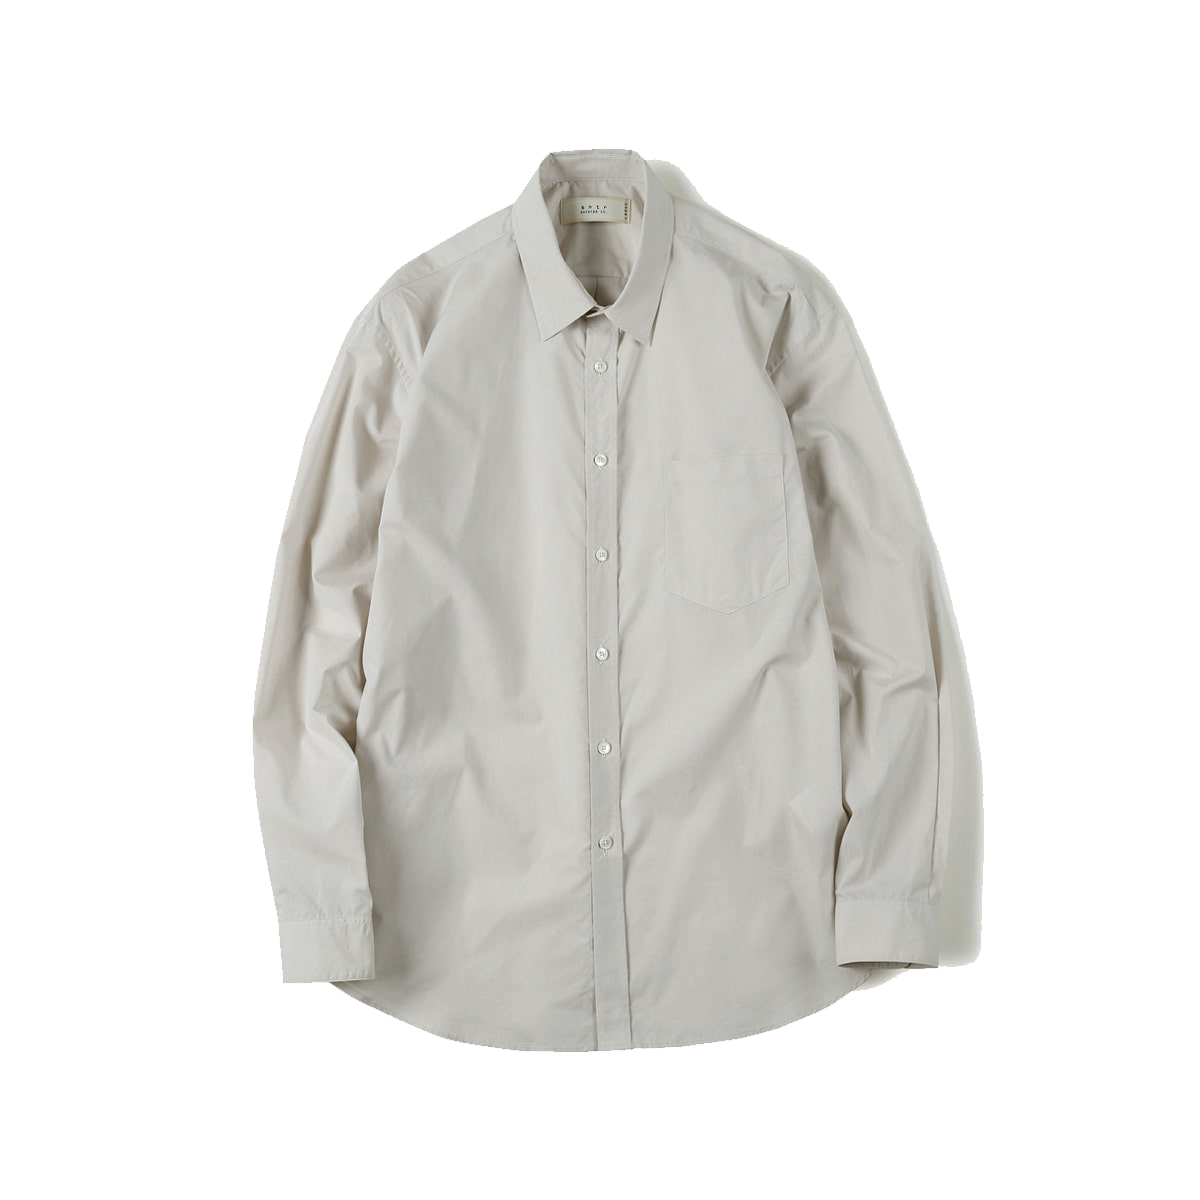 [SHIRTER] HIGH DENSITY STANDARD SHIRT 'LIGHT BEIGE'